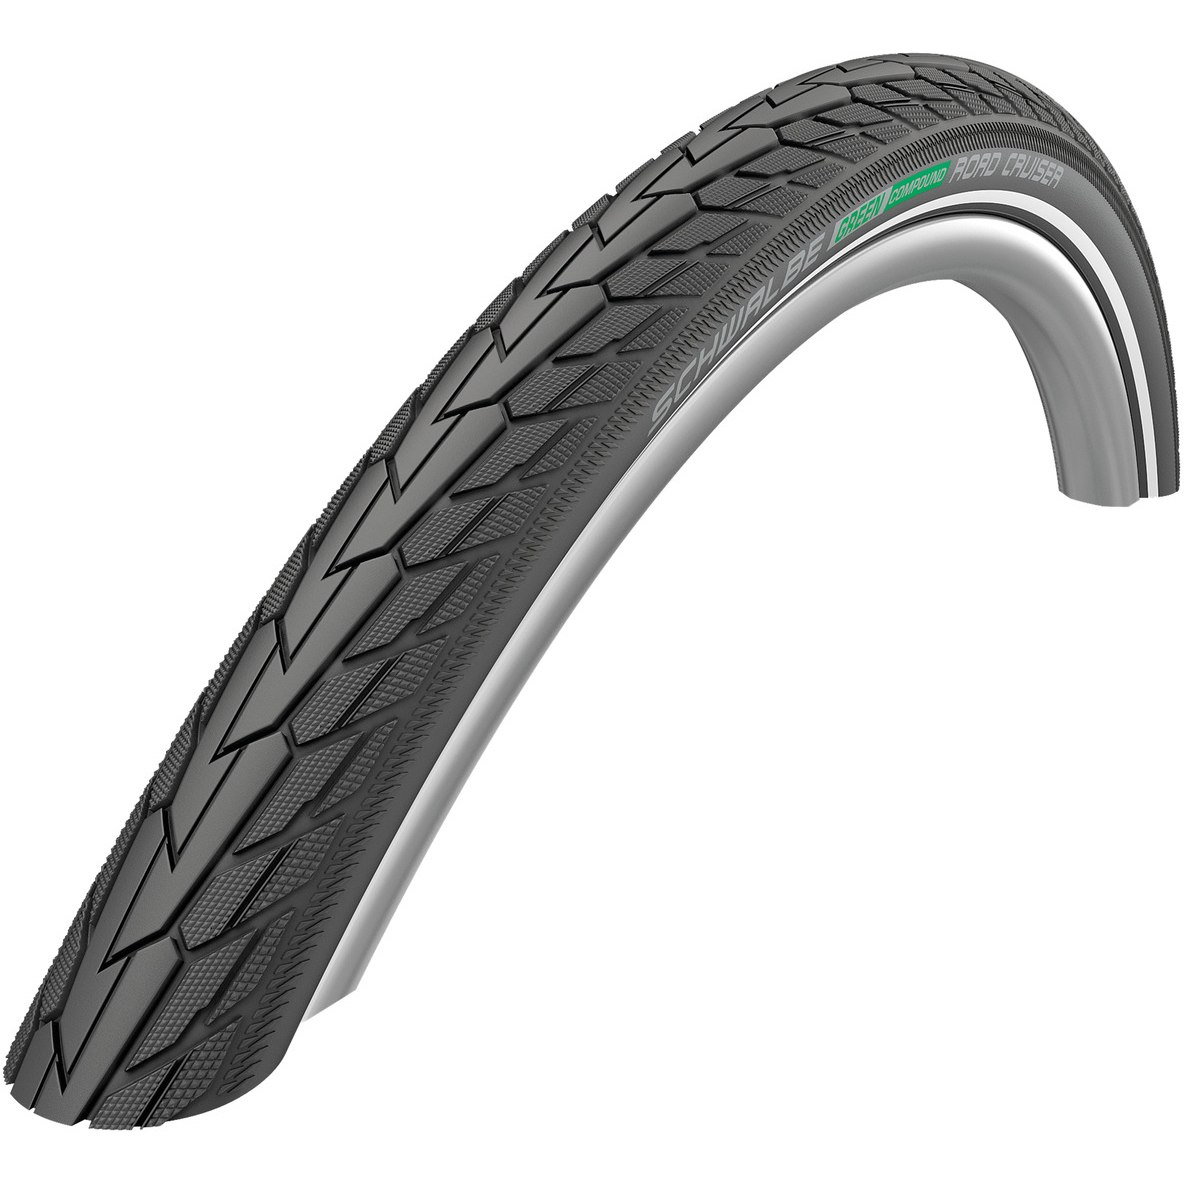 Picture of Schwalbe Road Cruiser Active Wired Tire - 28x1.60 Inches - Black-Reflex